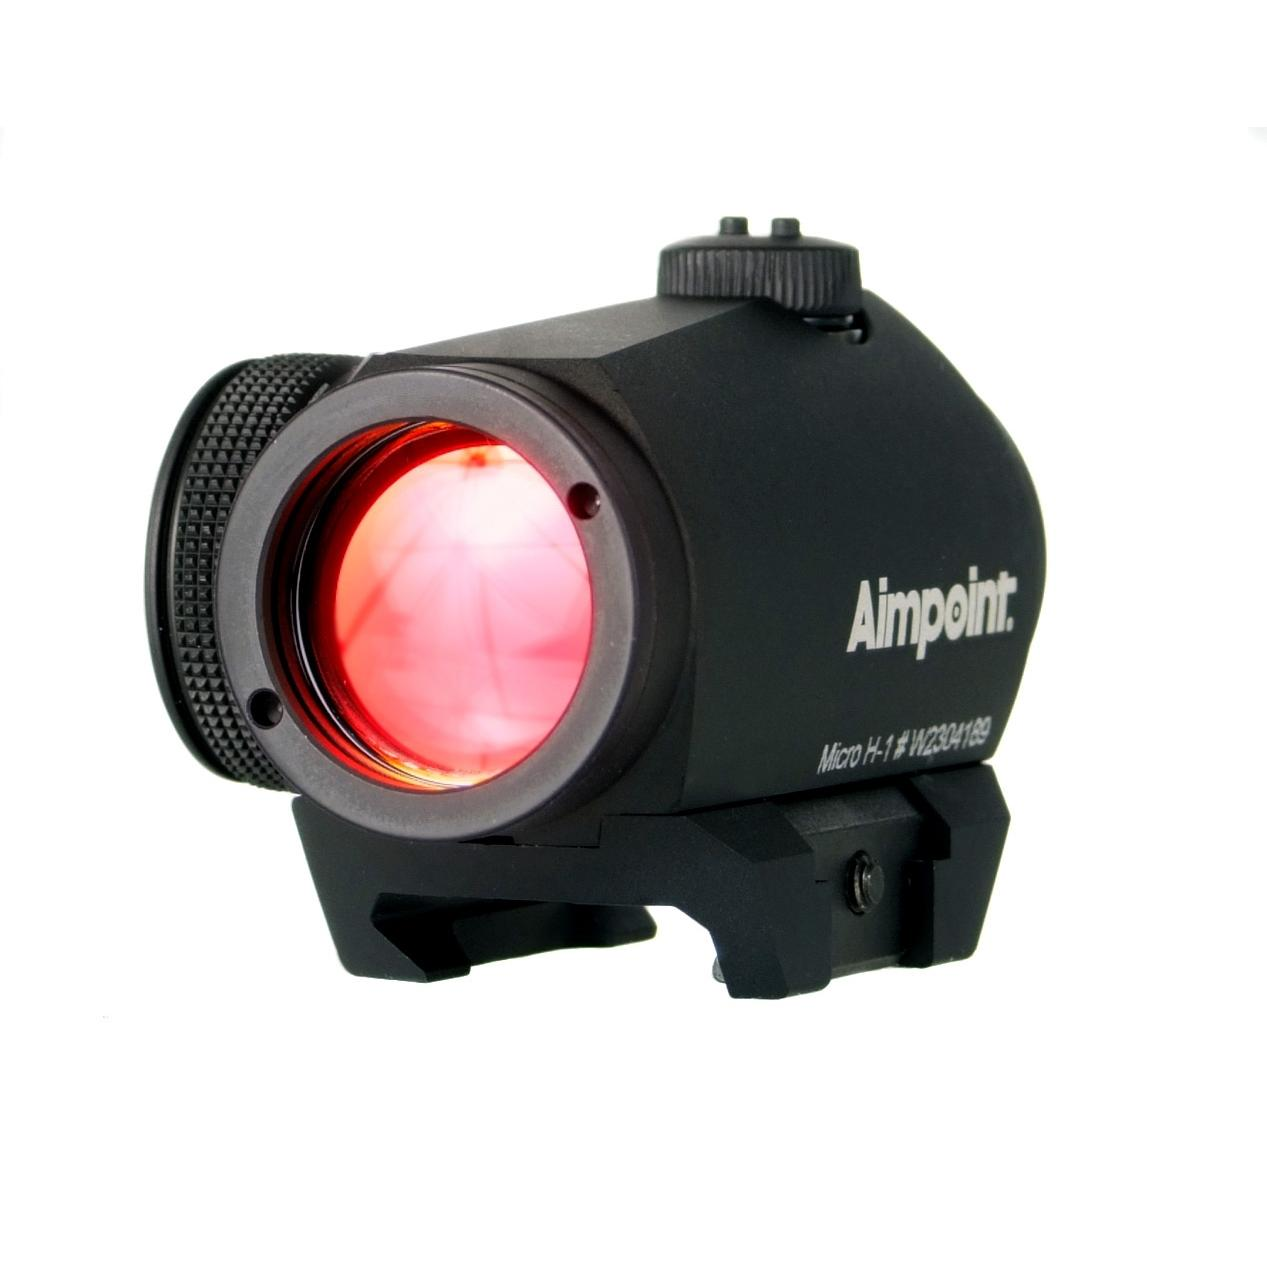 Aimpoint Micro H-1 Red Dot 4 MOA Sight - Black - 11910 thumbnail